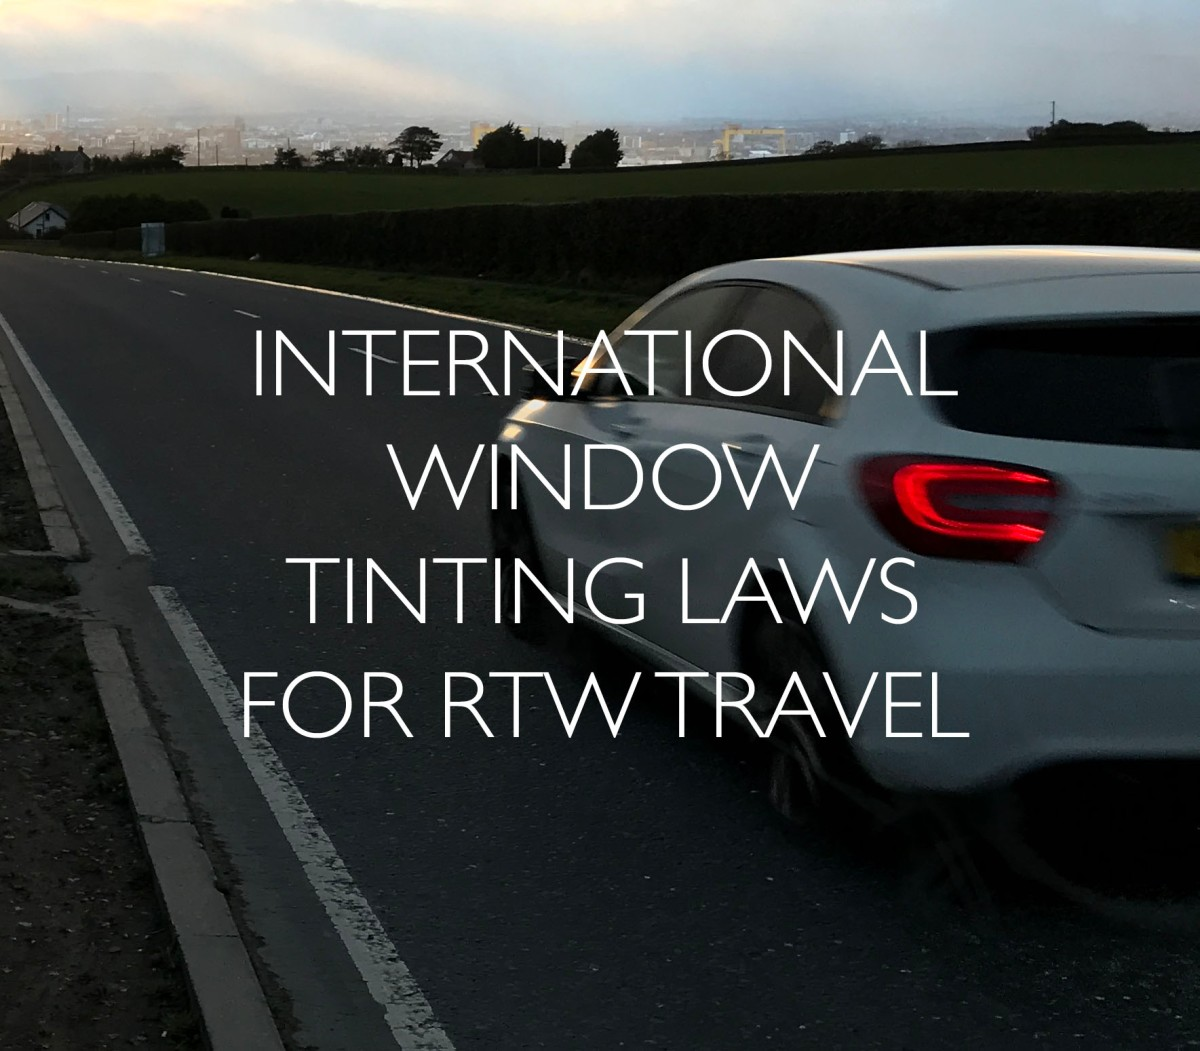 International Window Tinting Laws for Cars Driving Around the World